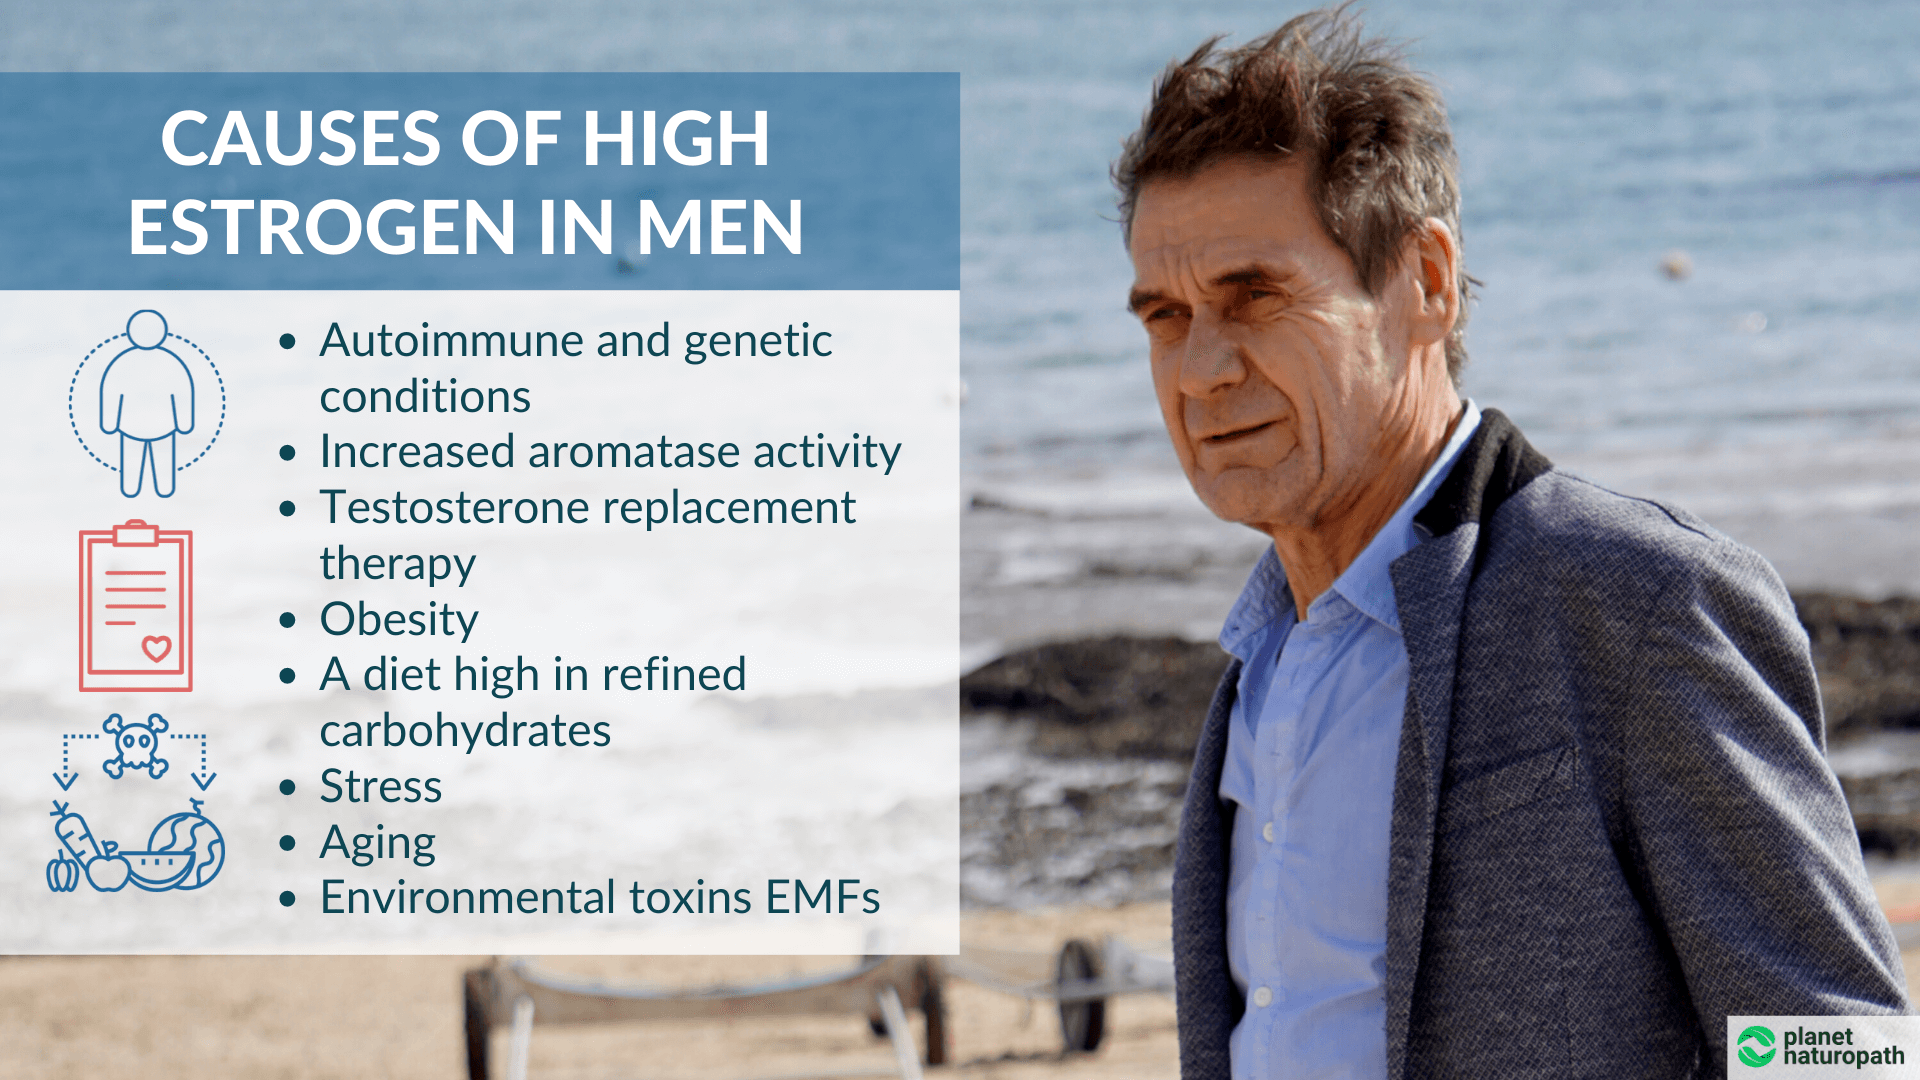 Causes-of-High-Estrogen-in-Men